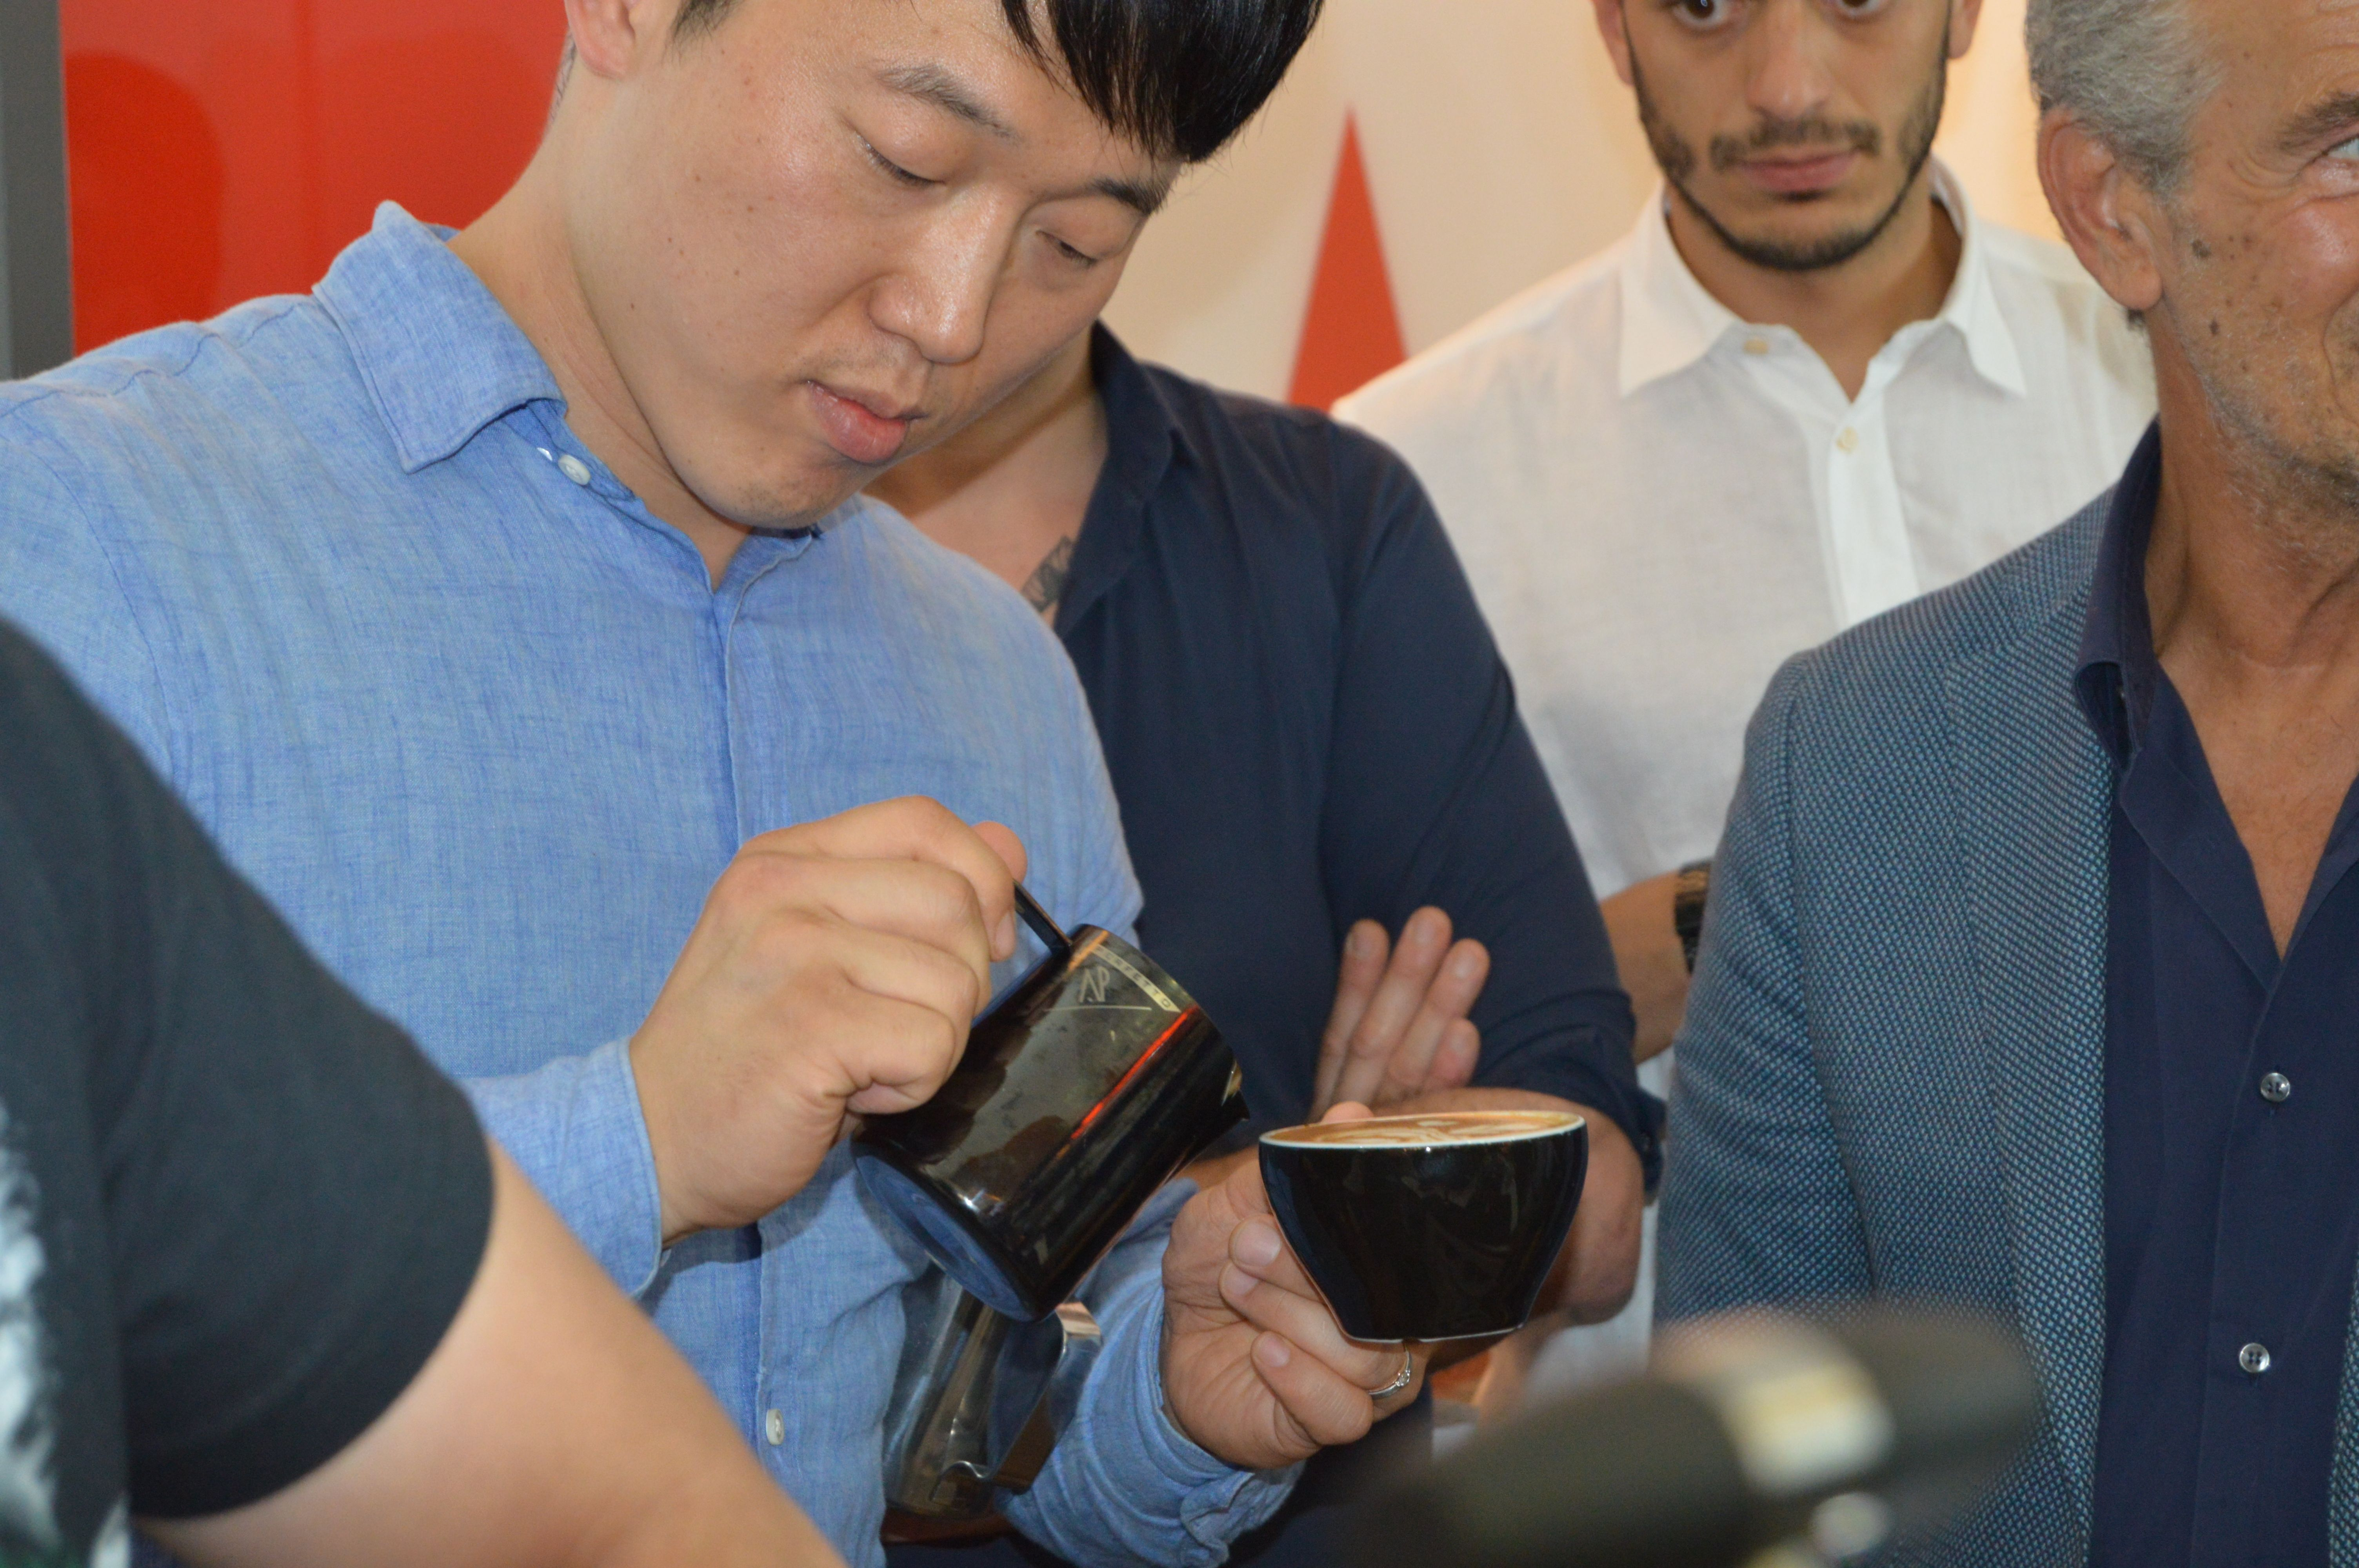 Musetti coffee academy al via la sede di pontenure pc for Musetti coffee